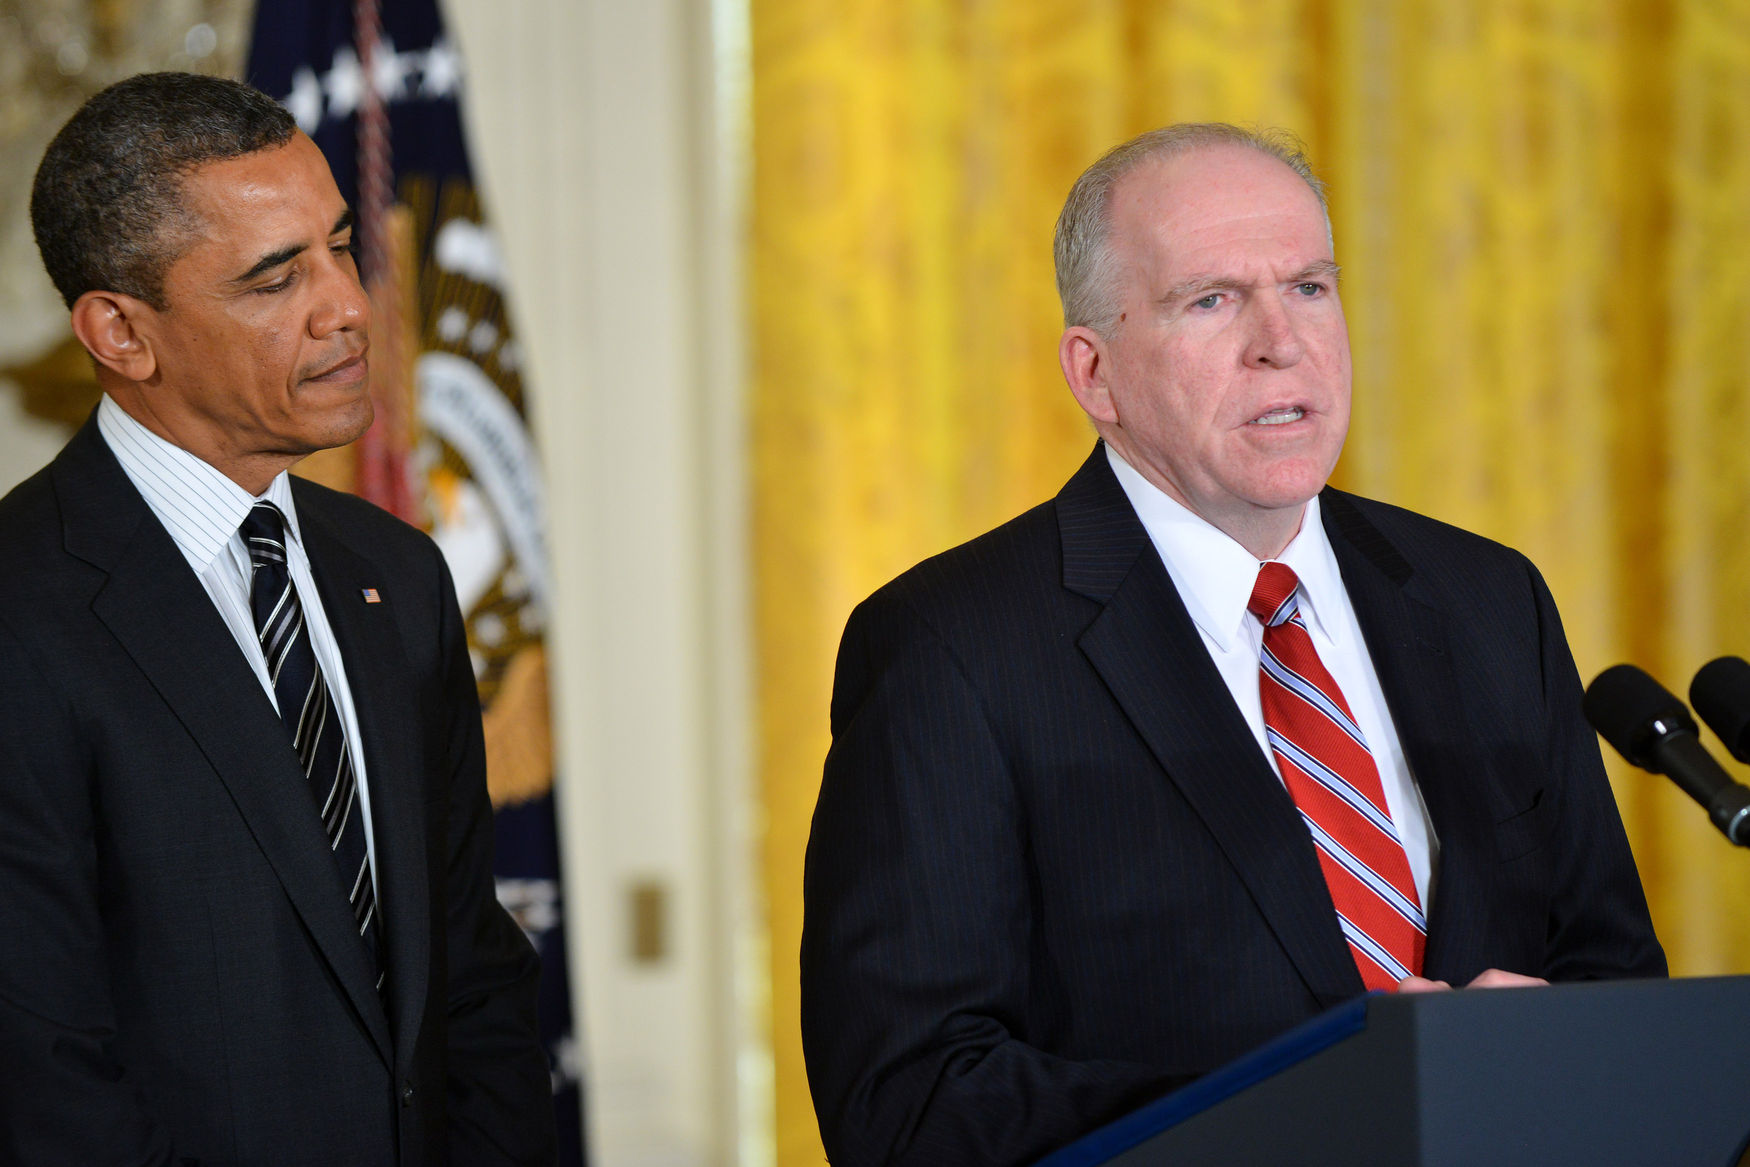 President Obama announces his nominees for Defense Secretary and CIA Director in Washington